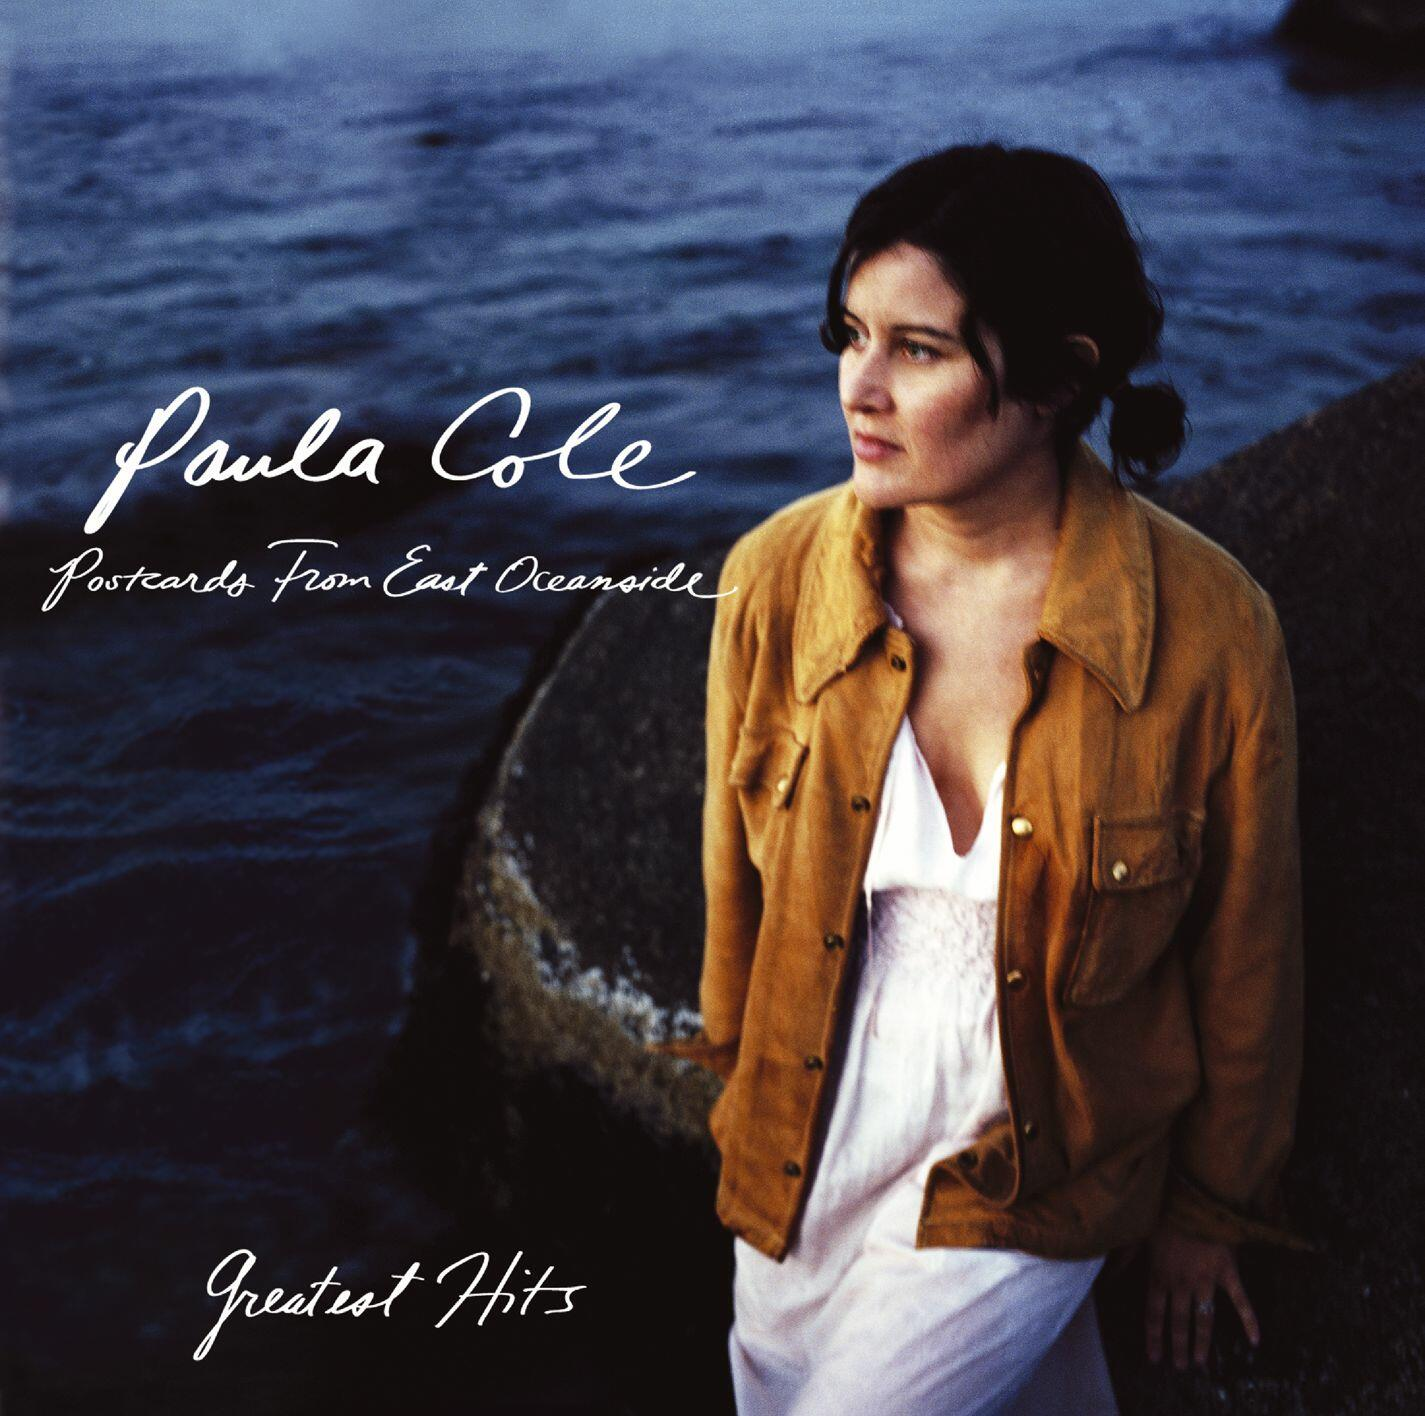 Paula Cole Band Radio Listen To Free Music Amp Get The Latest Info Iheartradio